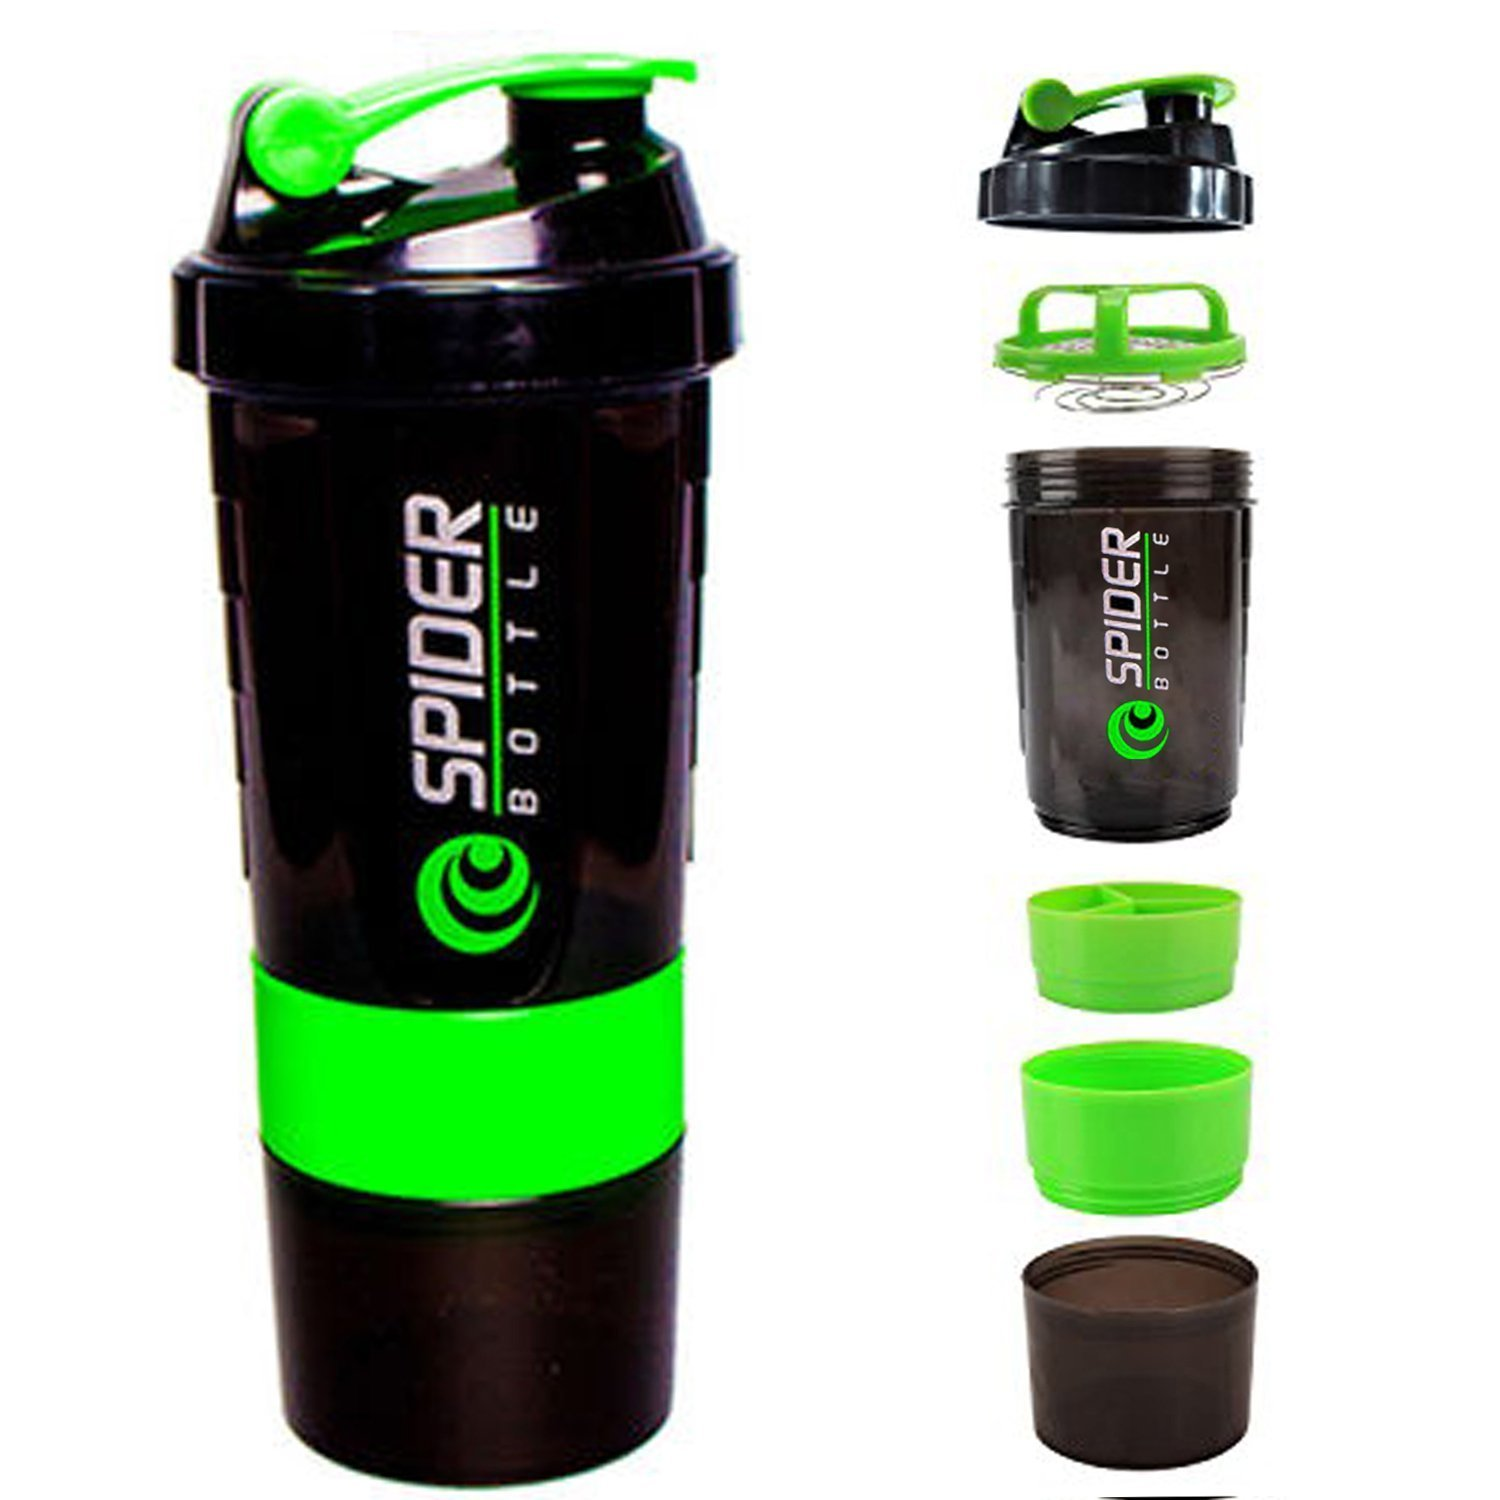 Spider Protein Shaker Bottle for Gym - 500ml (Multi Colour Will Be Shipped)